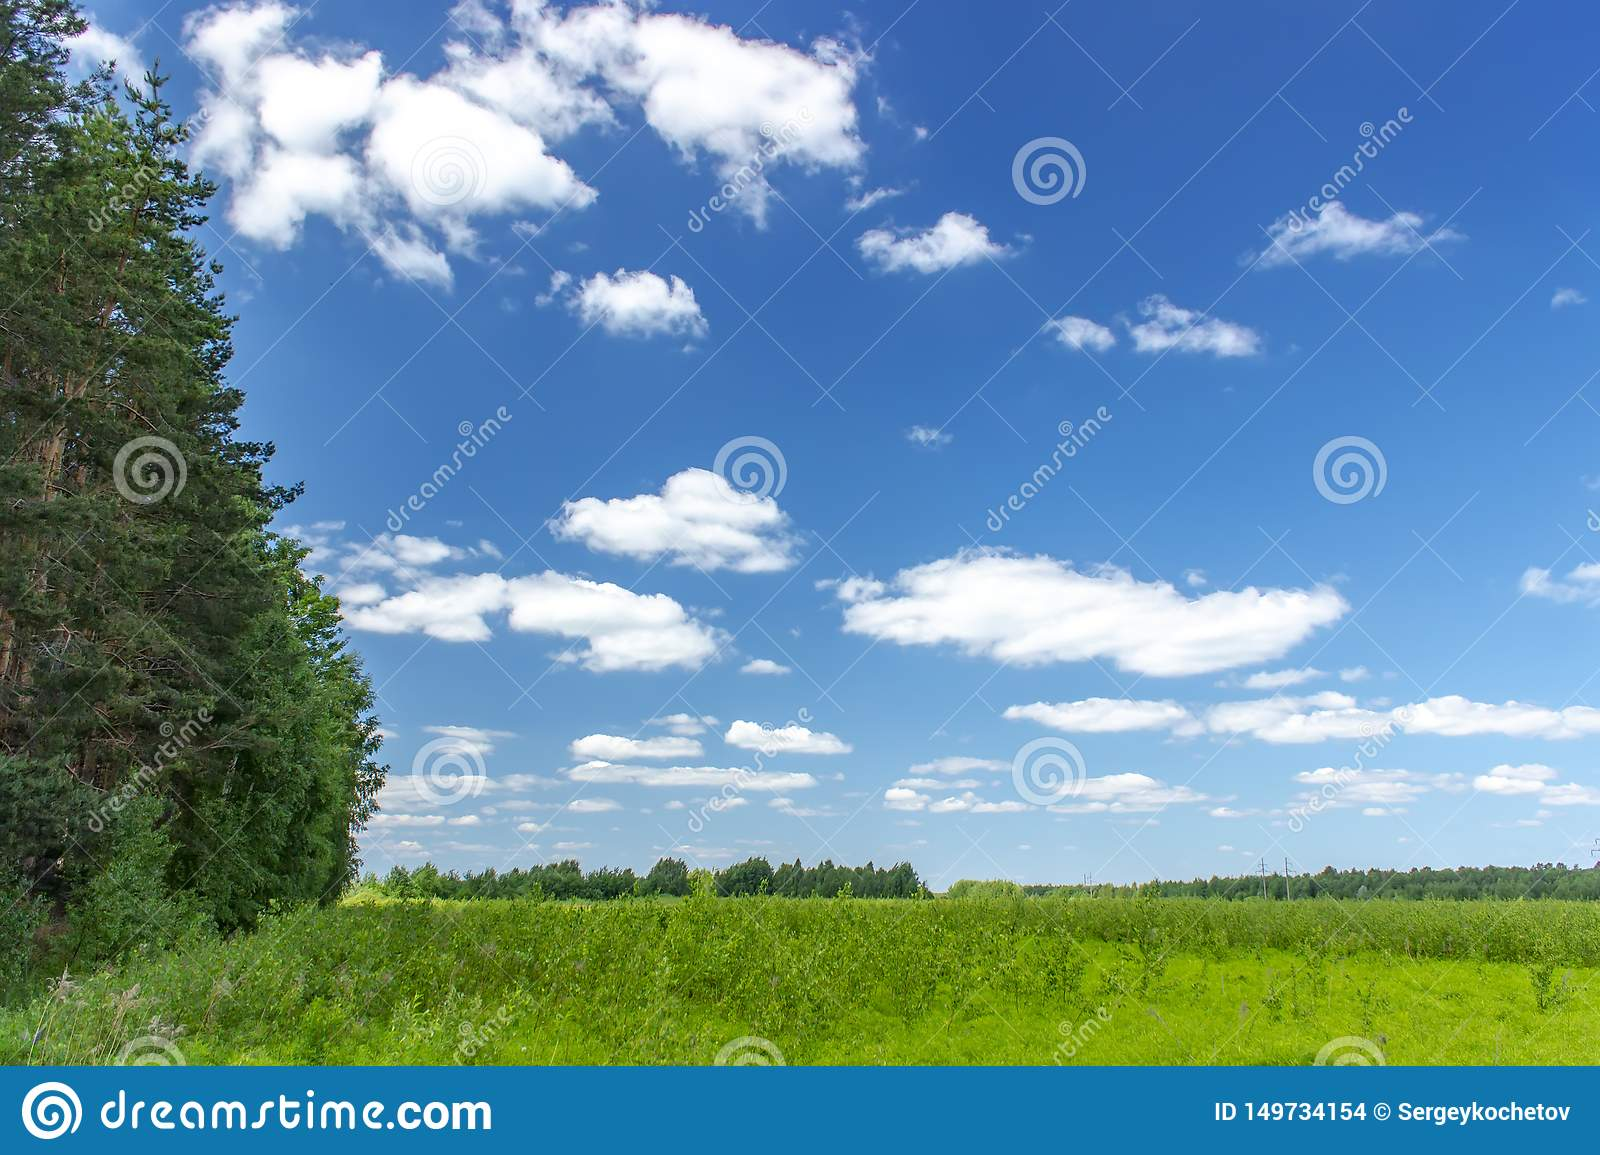 Beautiful summer landscape with green grass and blue sky with white clouds